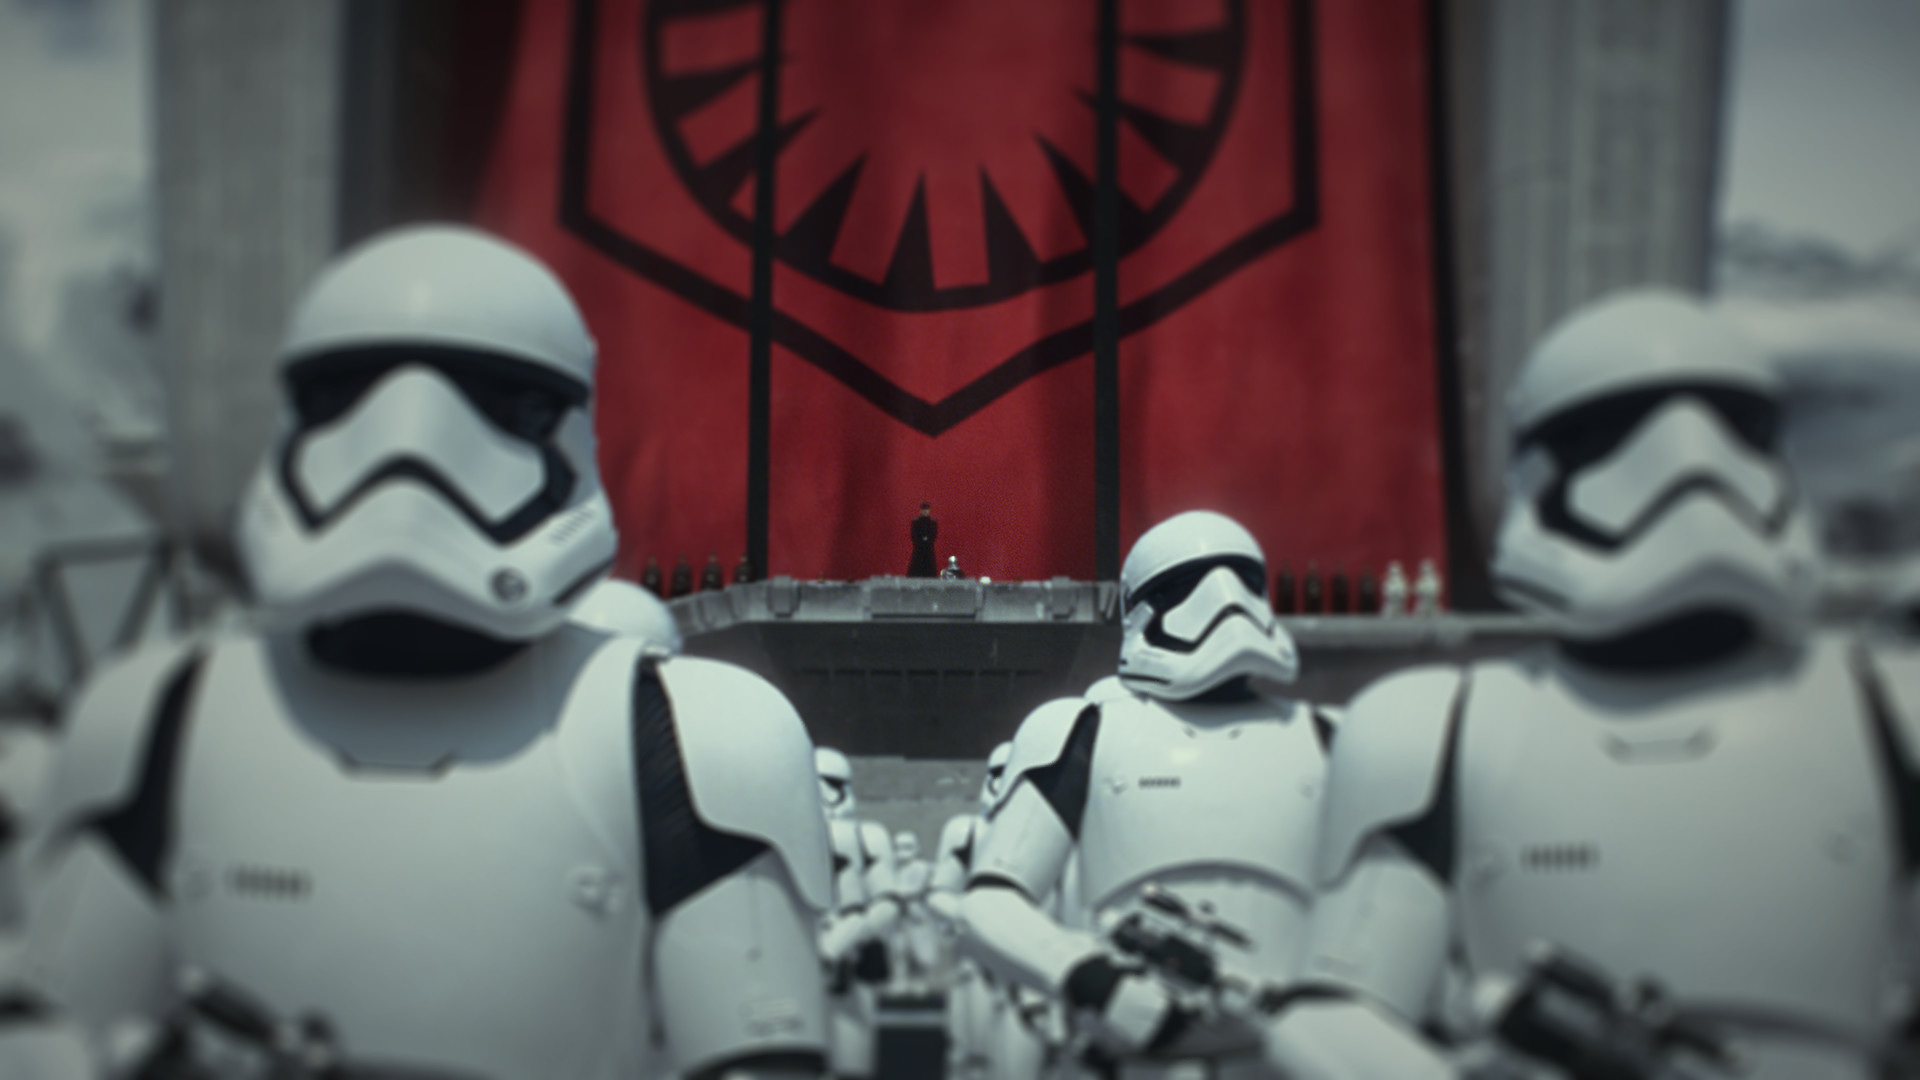 … Star Wars Ep. 7 First Order wallpaper by PepperRoniLove